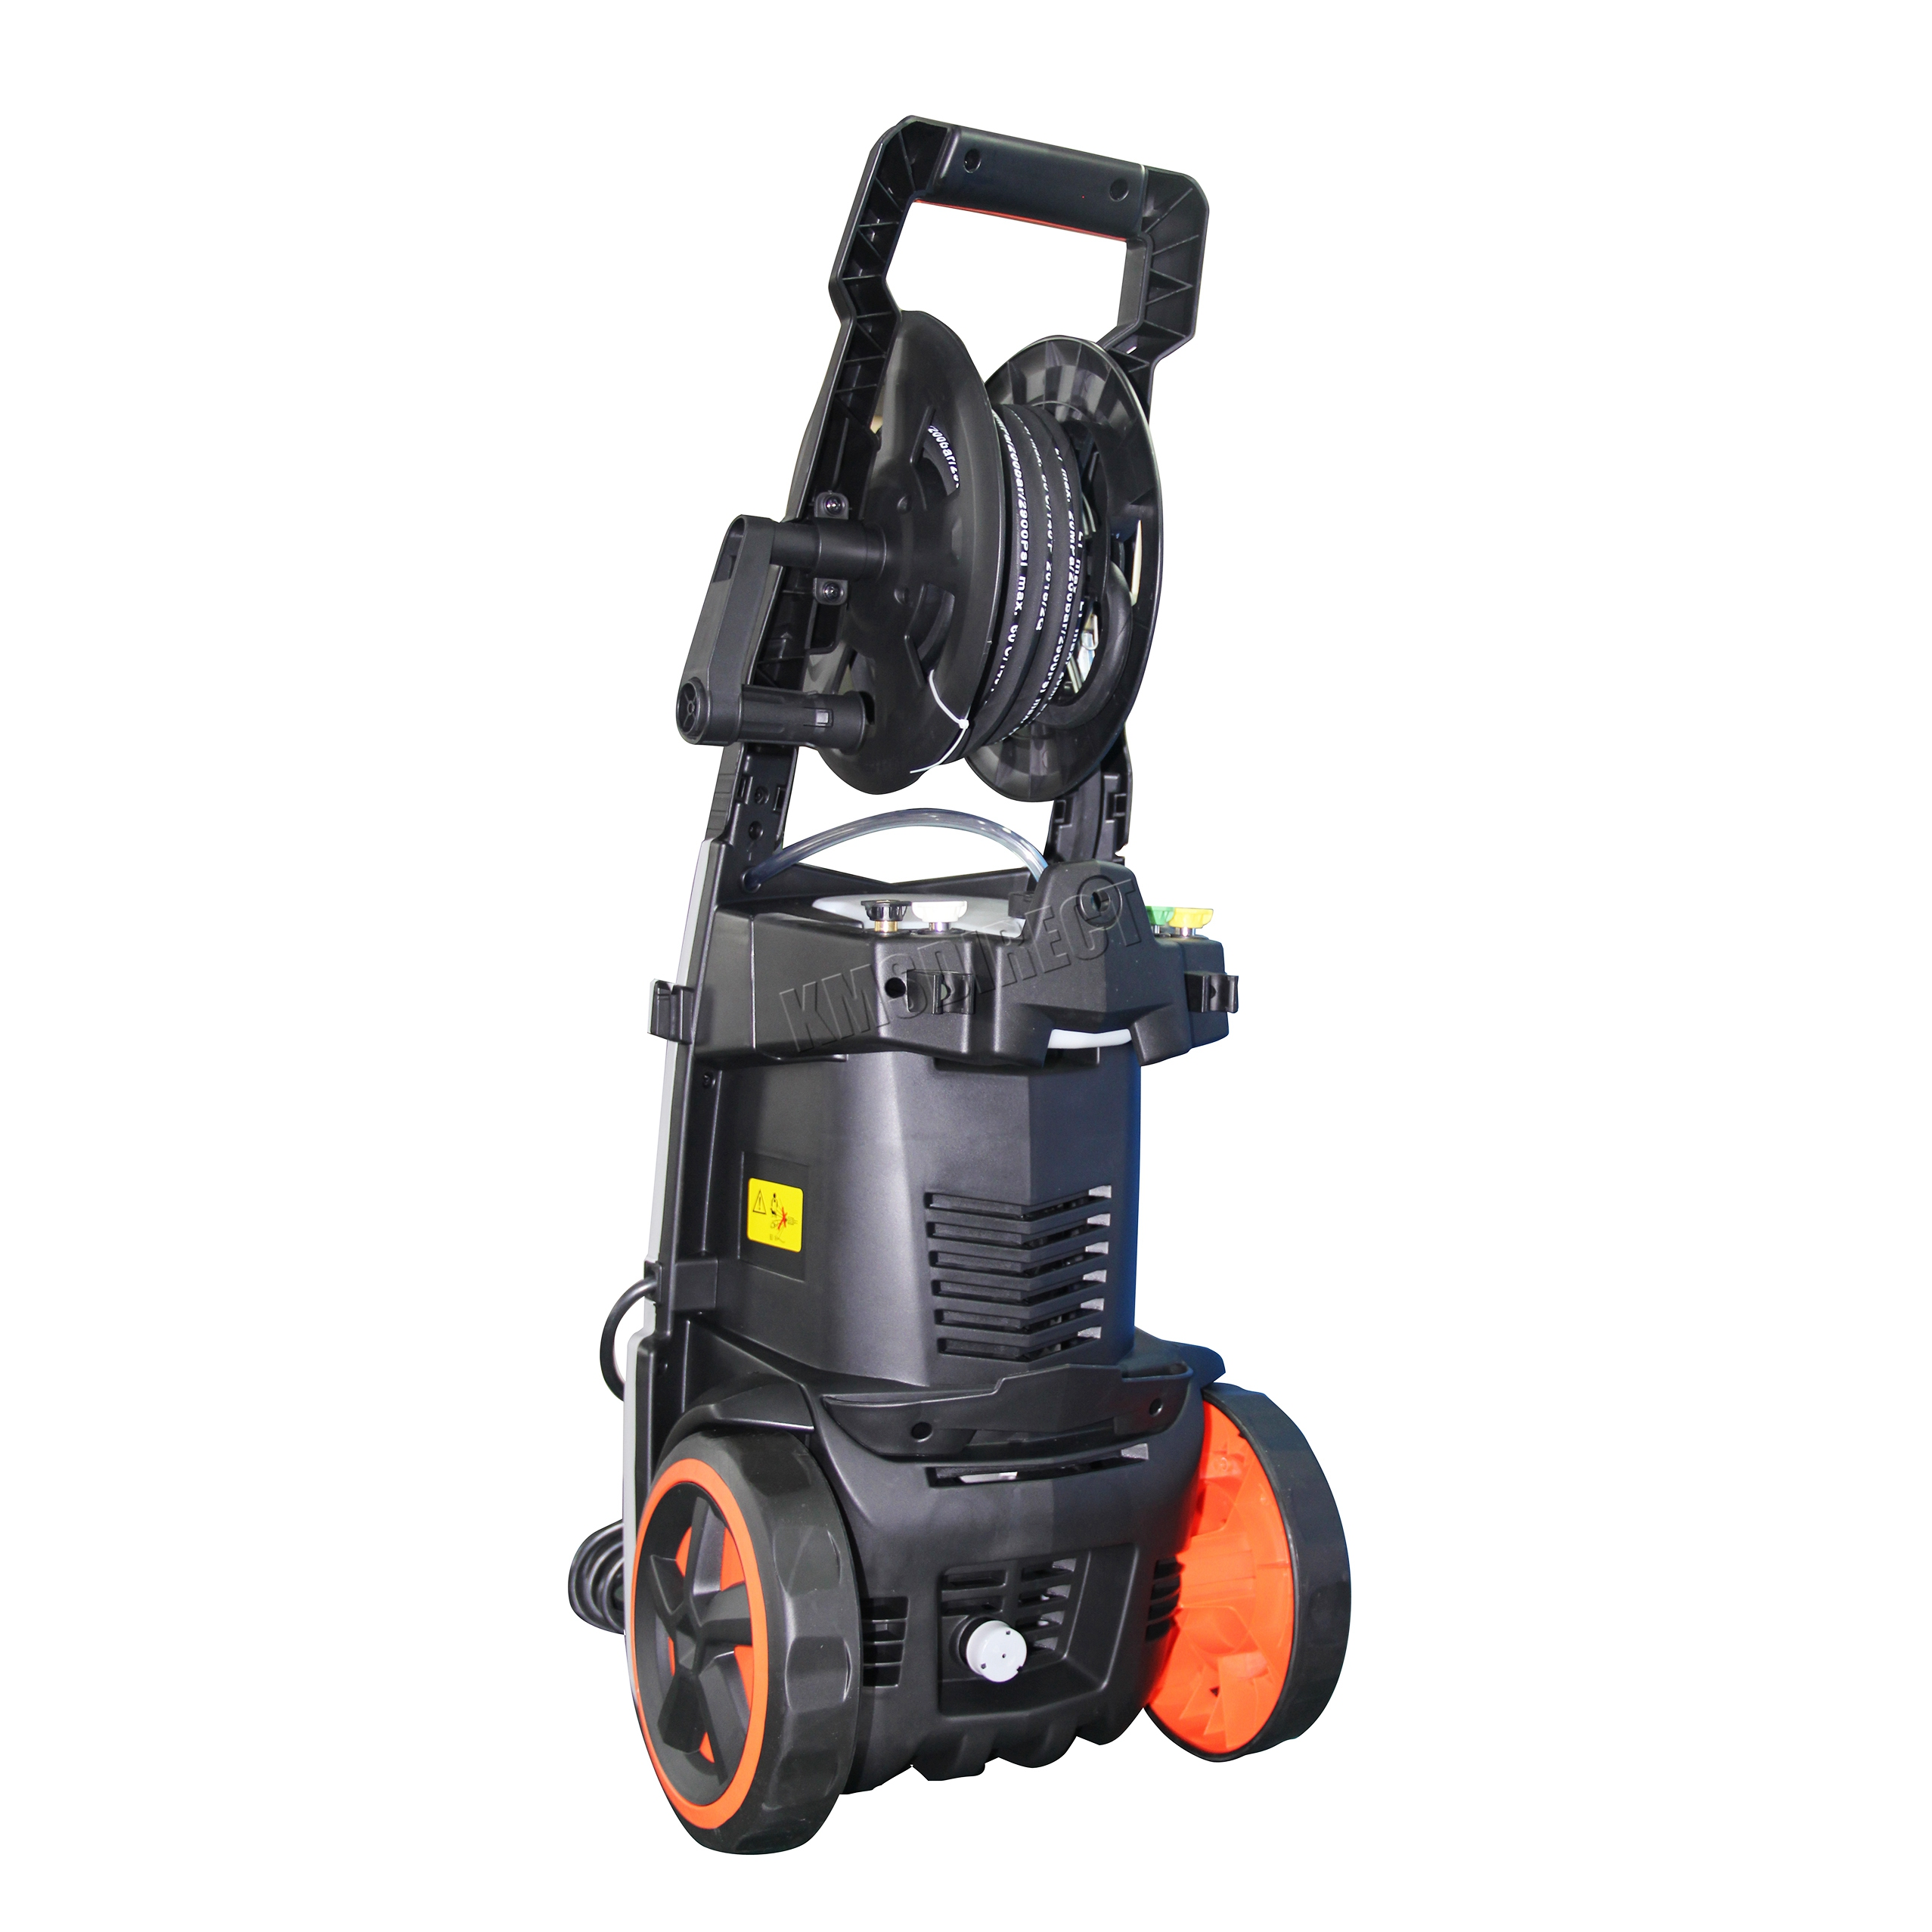 Switzer Portable Electric Pressure Washer 2000w 2320psi